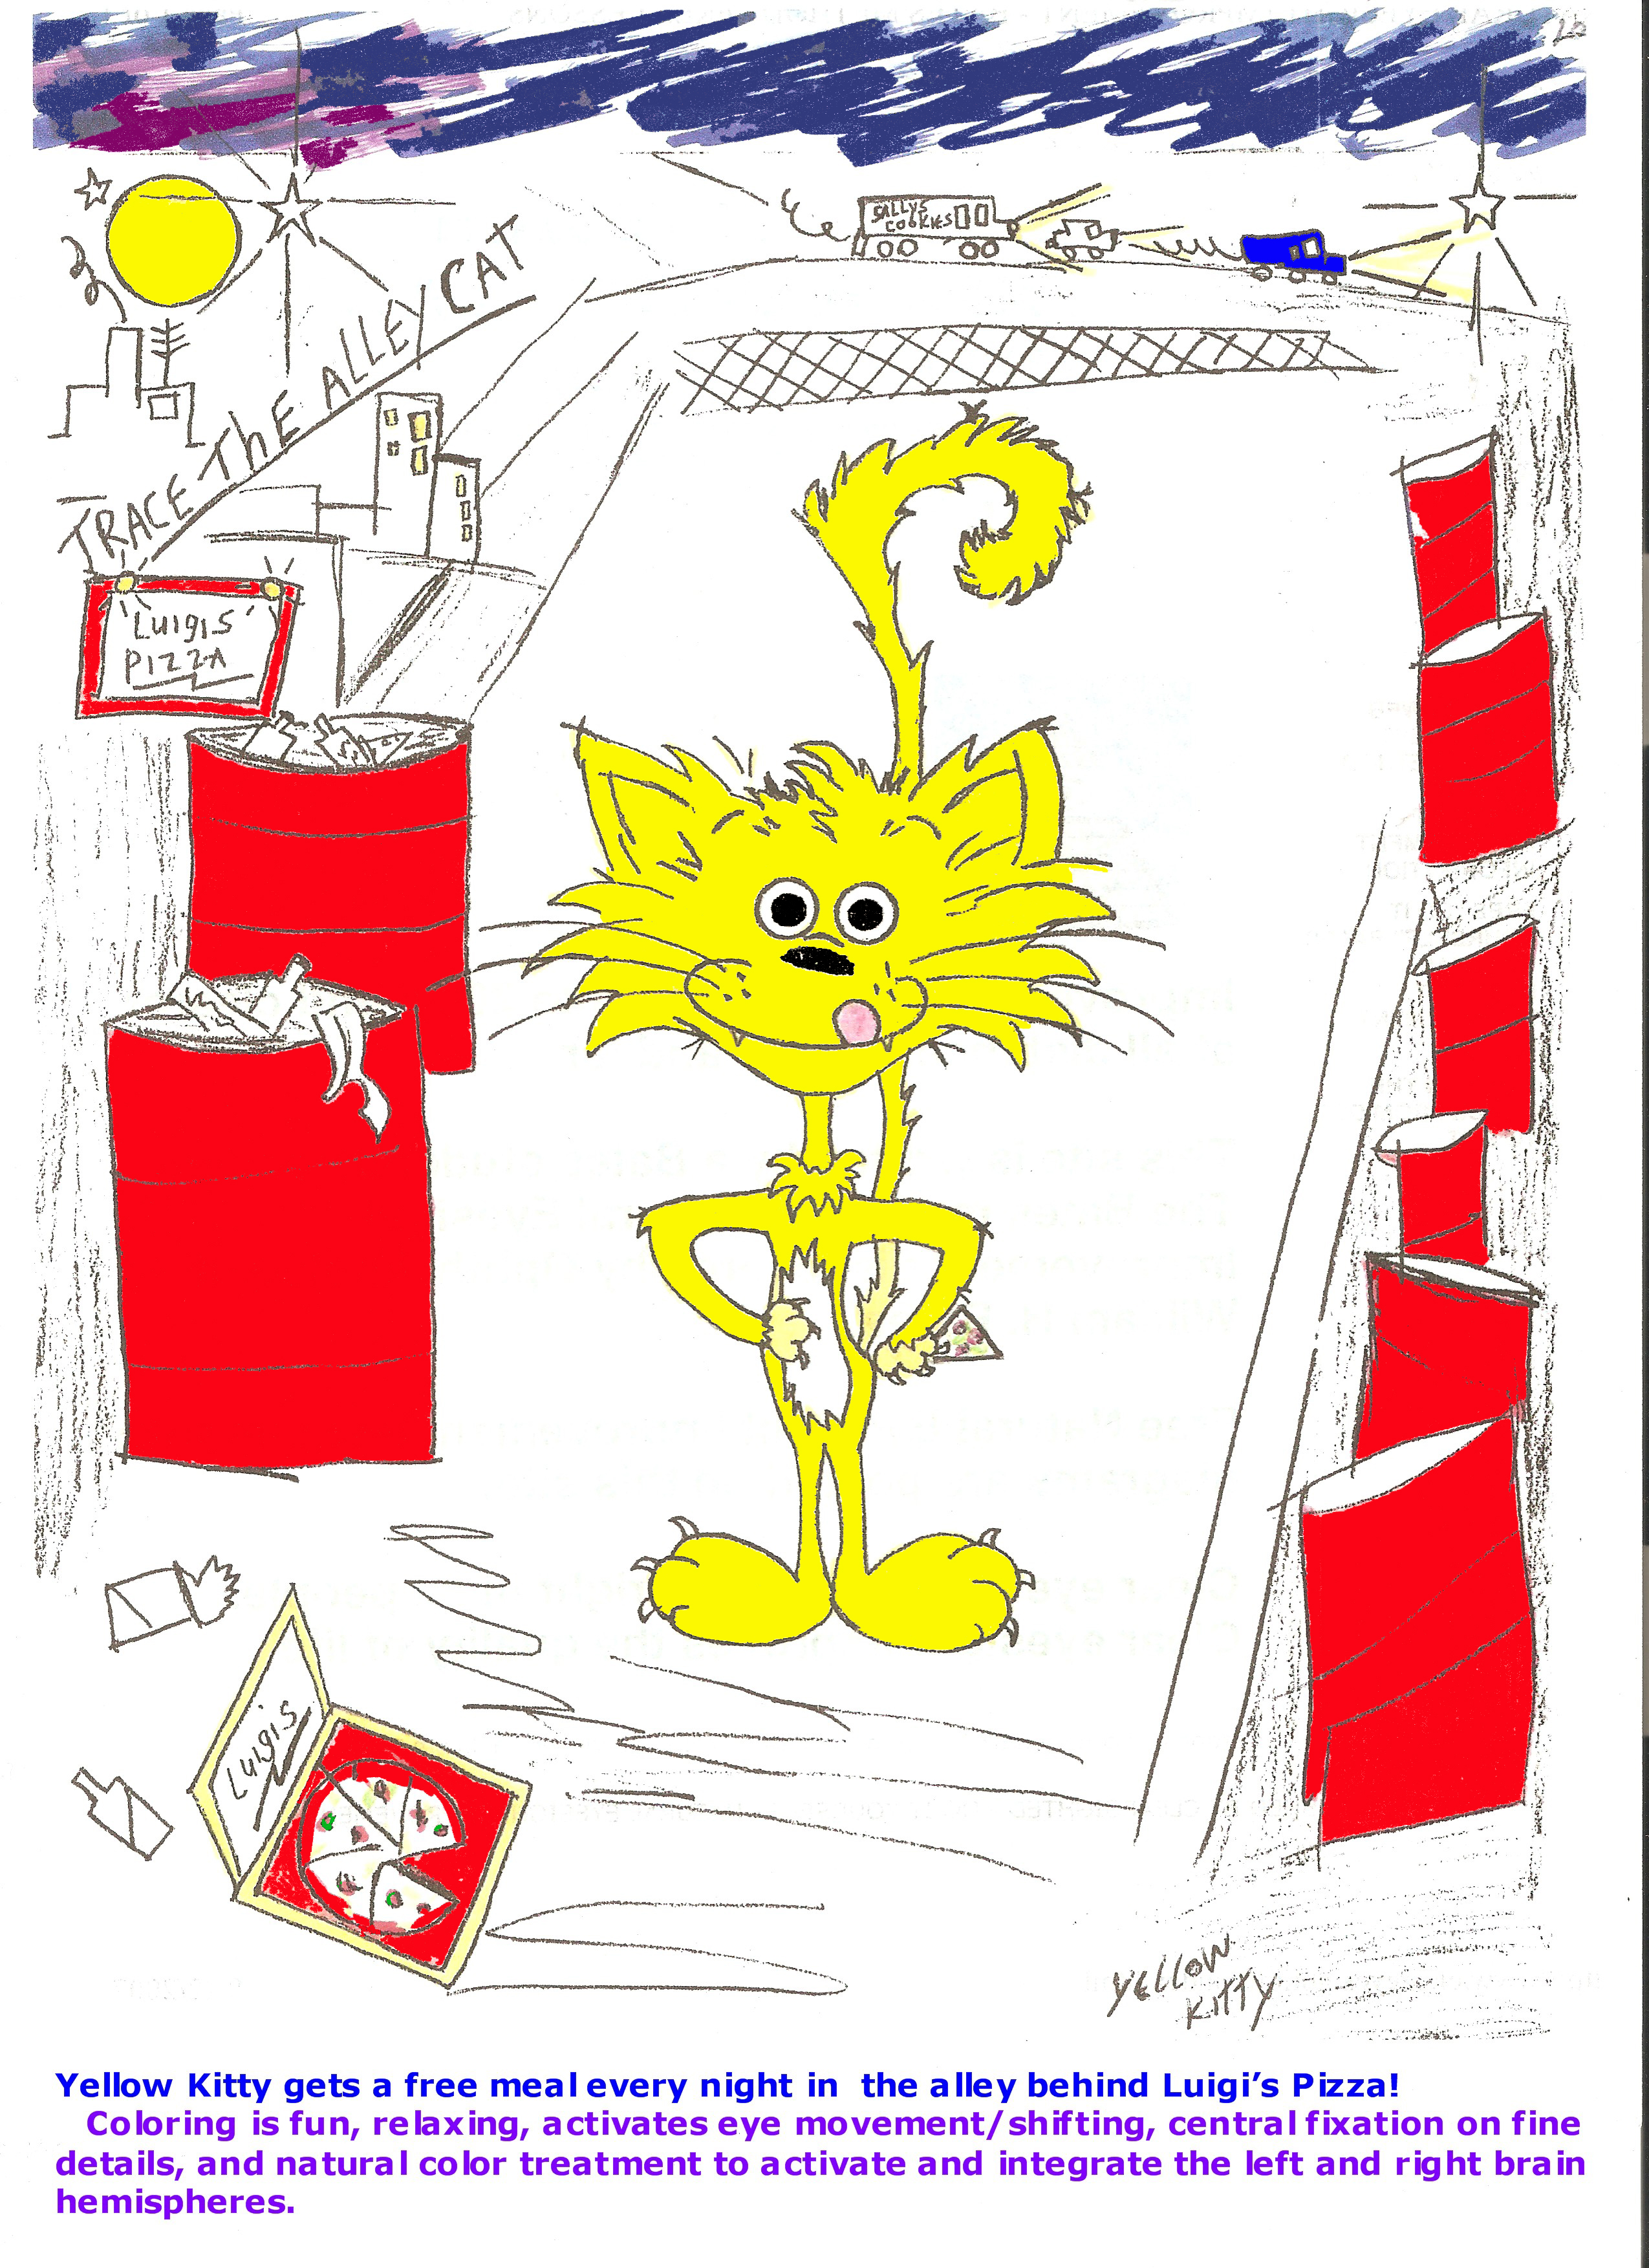 Coloring Book, Yellow Kitty